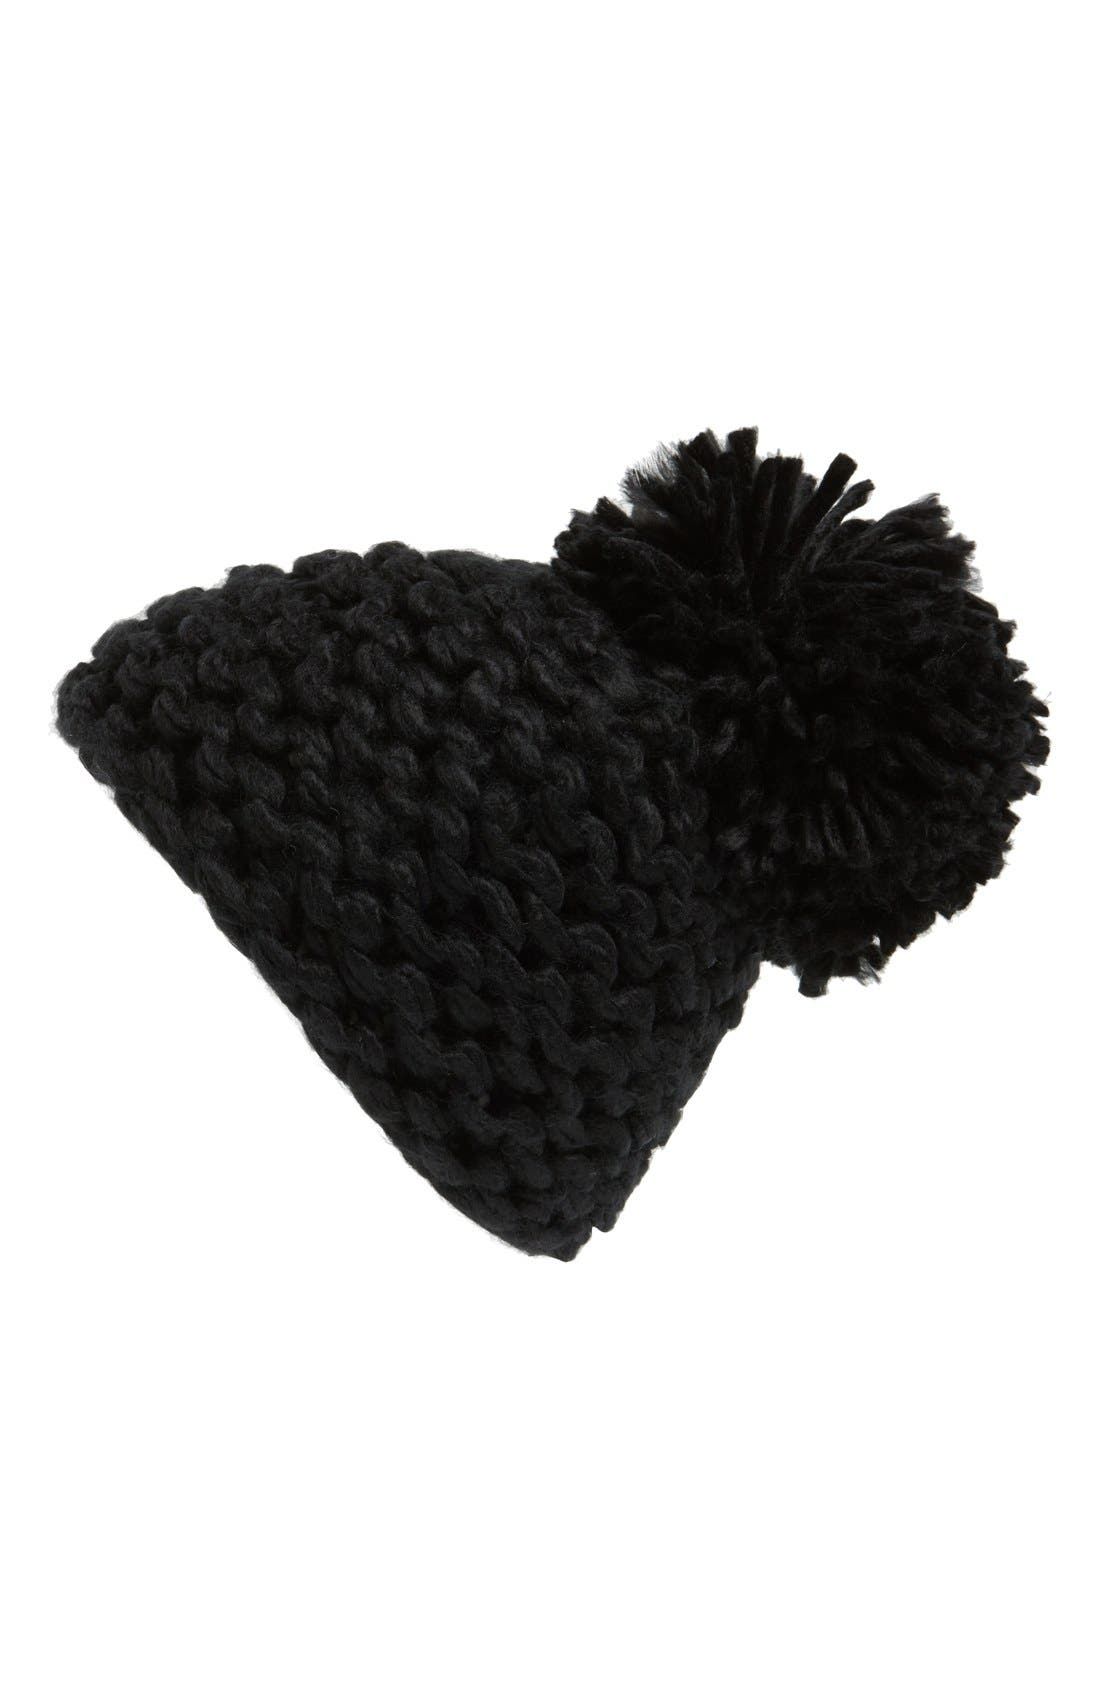 BCBGENERATION Knit Pompom Beanie, Main, color, 001